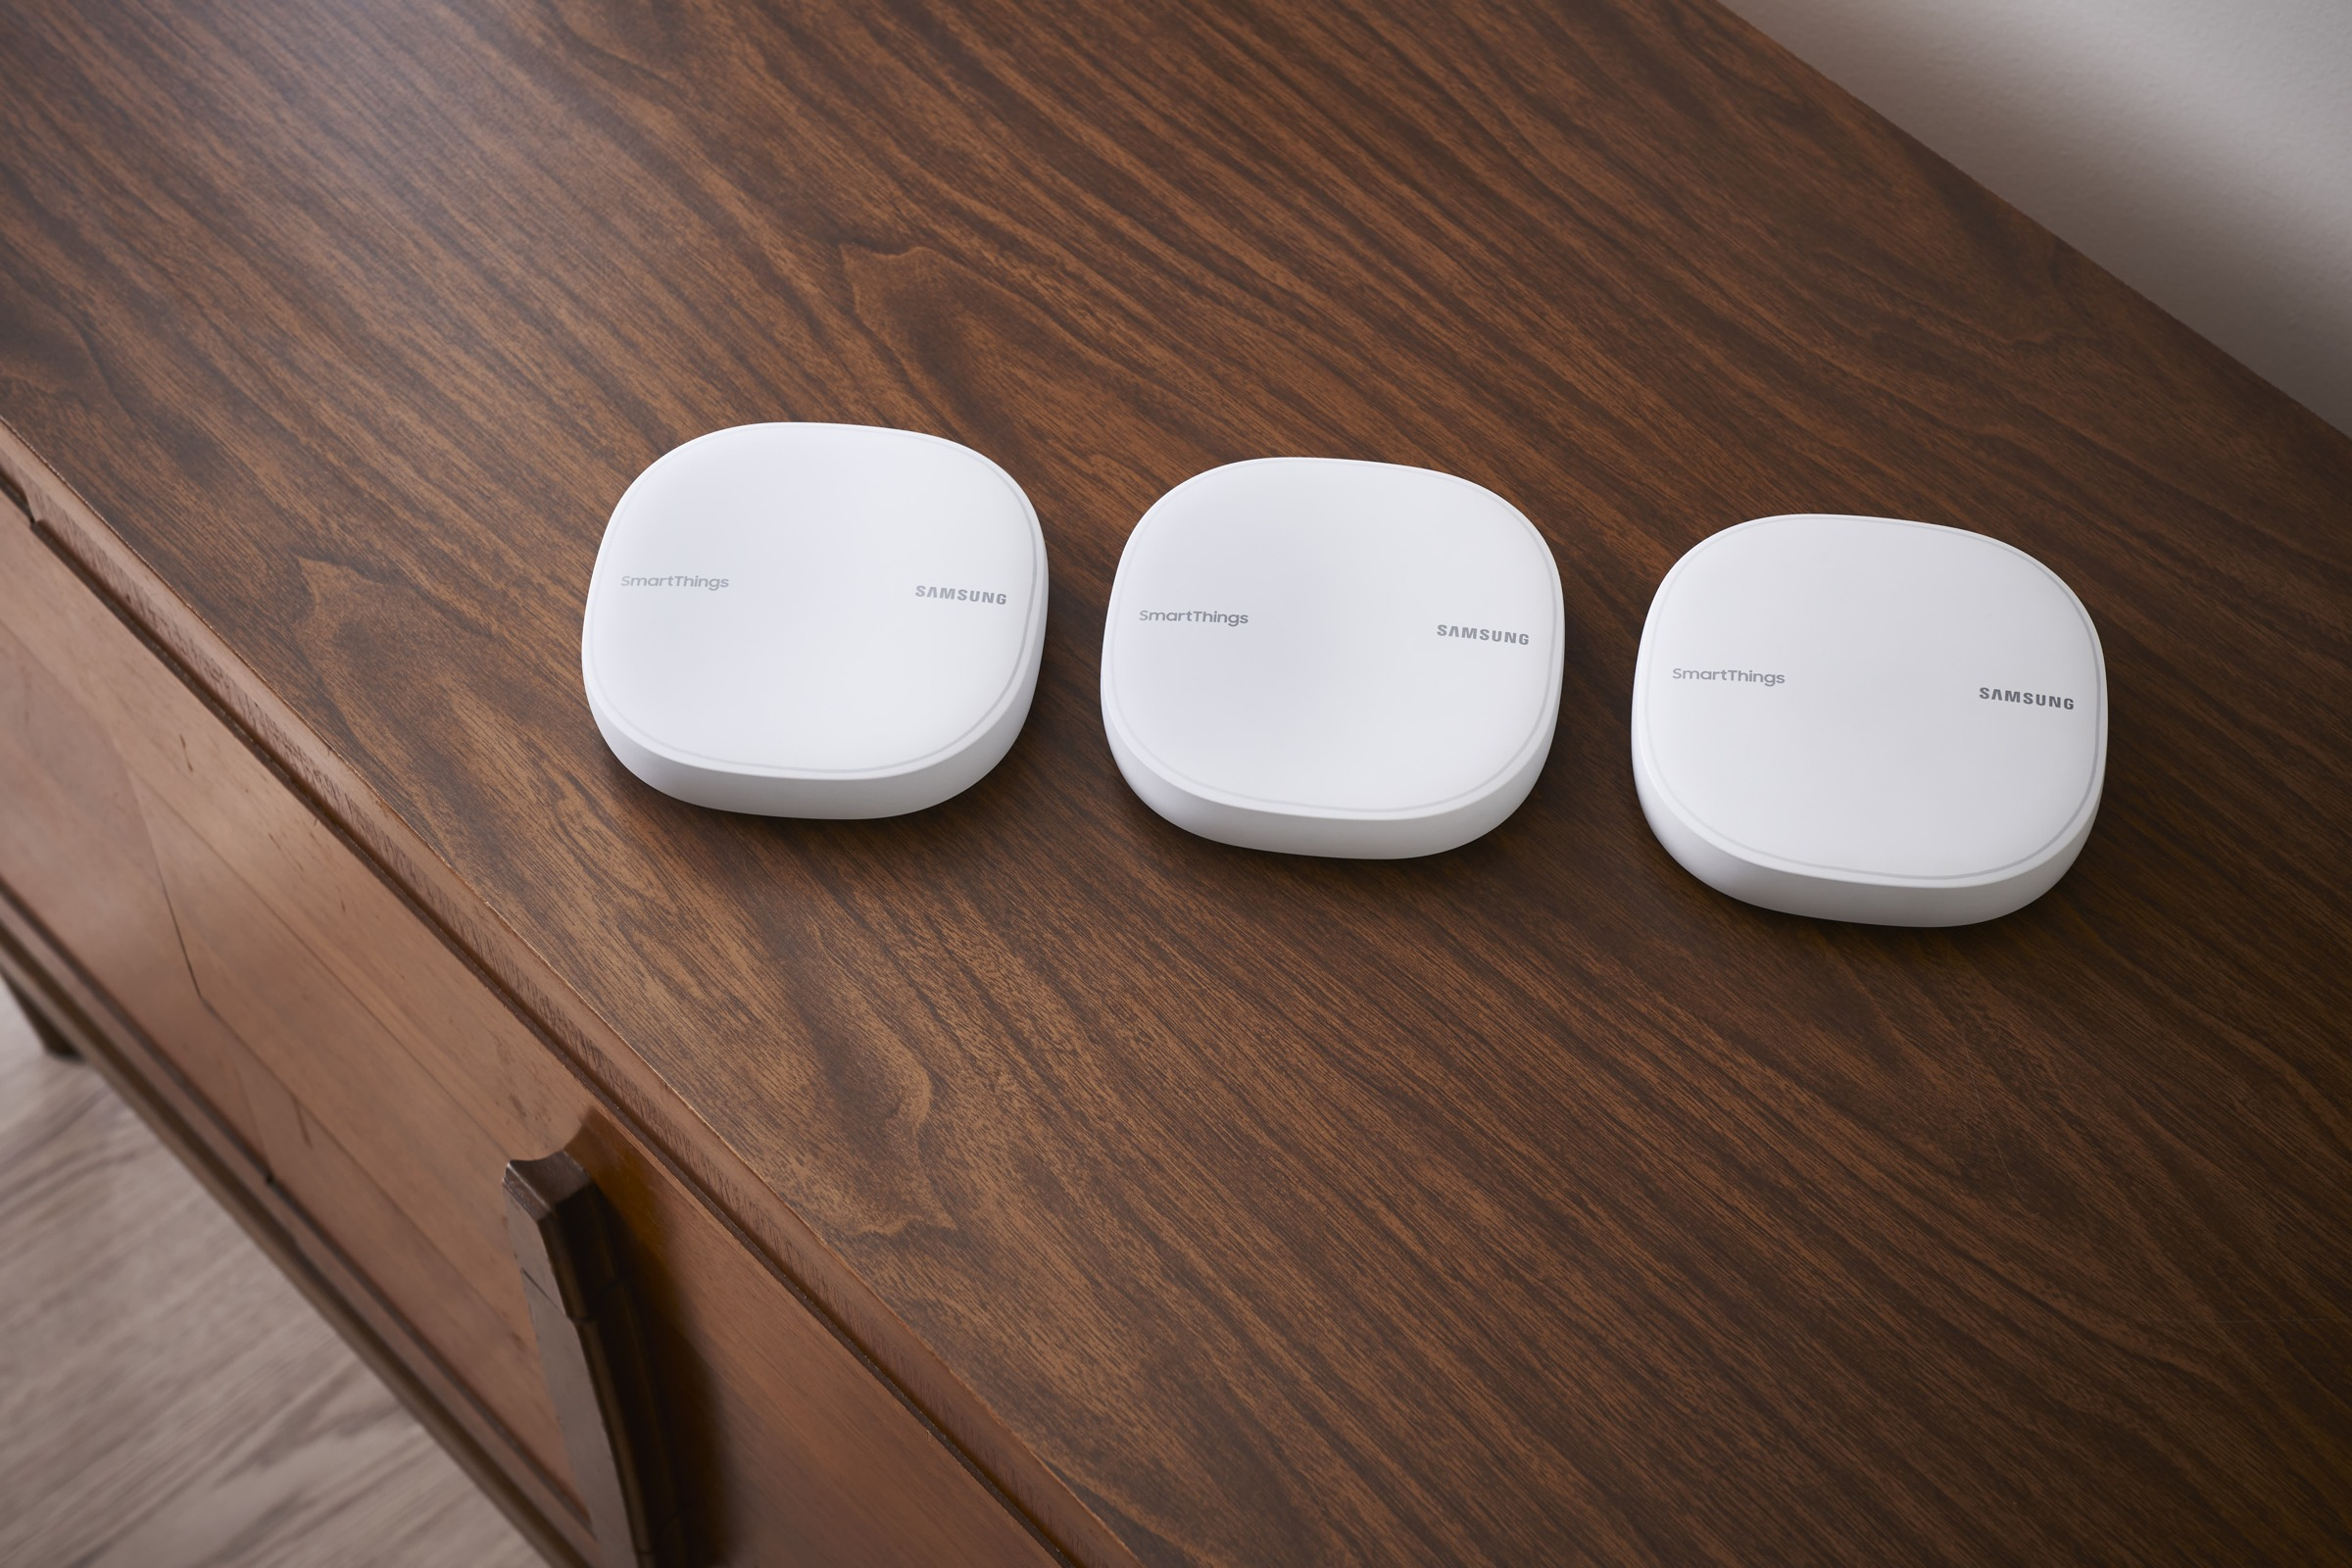 Samsung_SmartThings_WiFi_Group.jpg